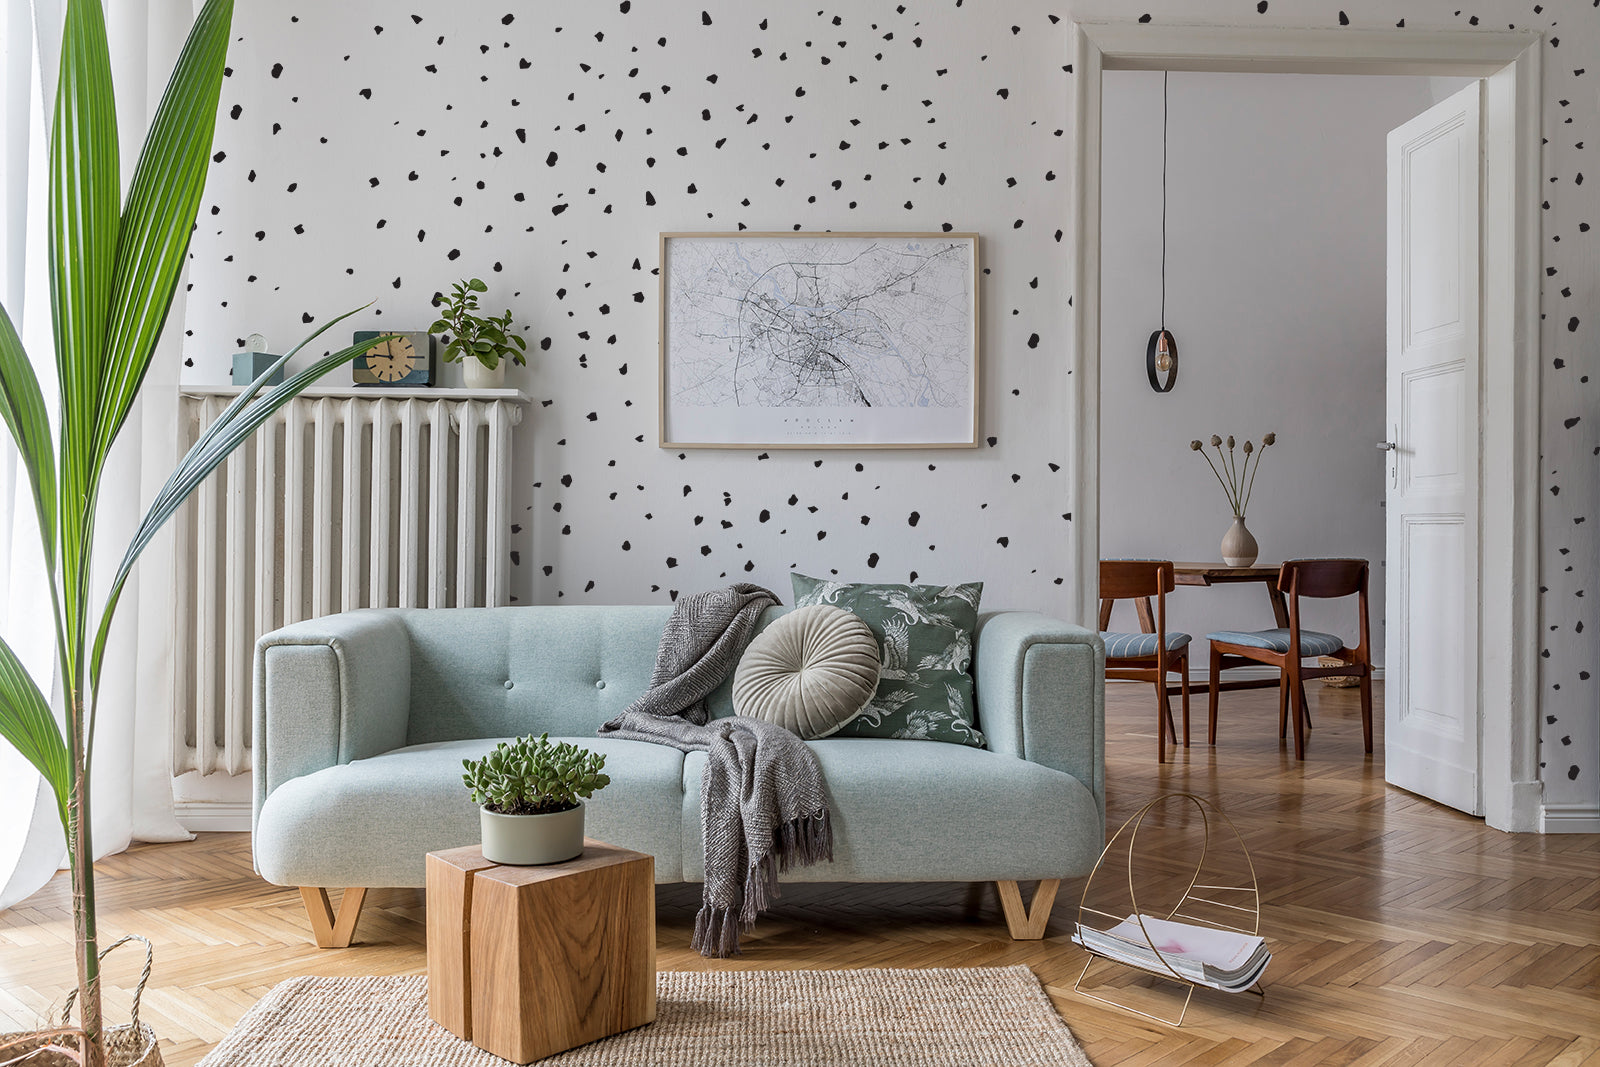 Dalmatian Dots peel and stick wall decals